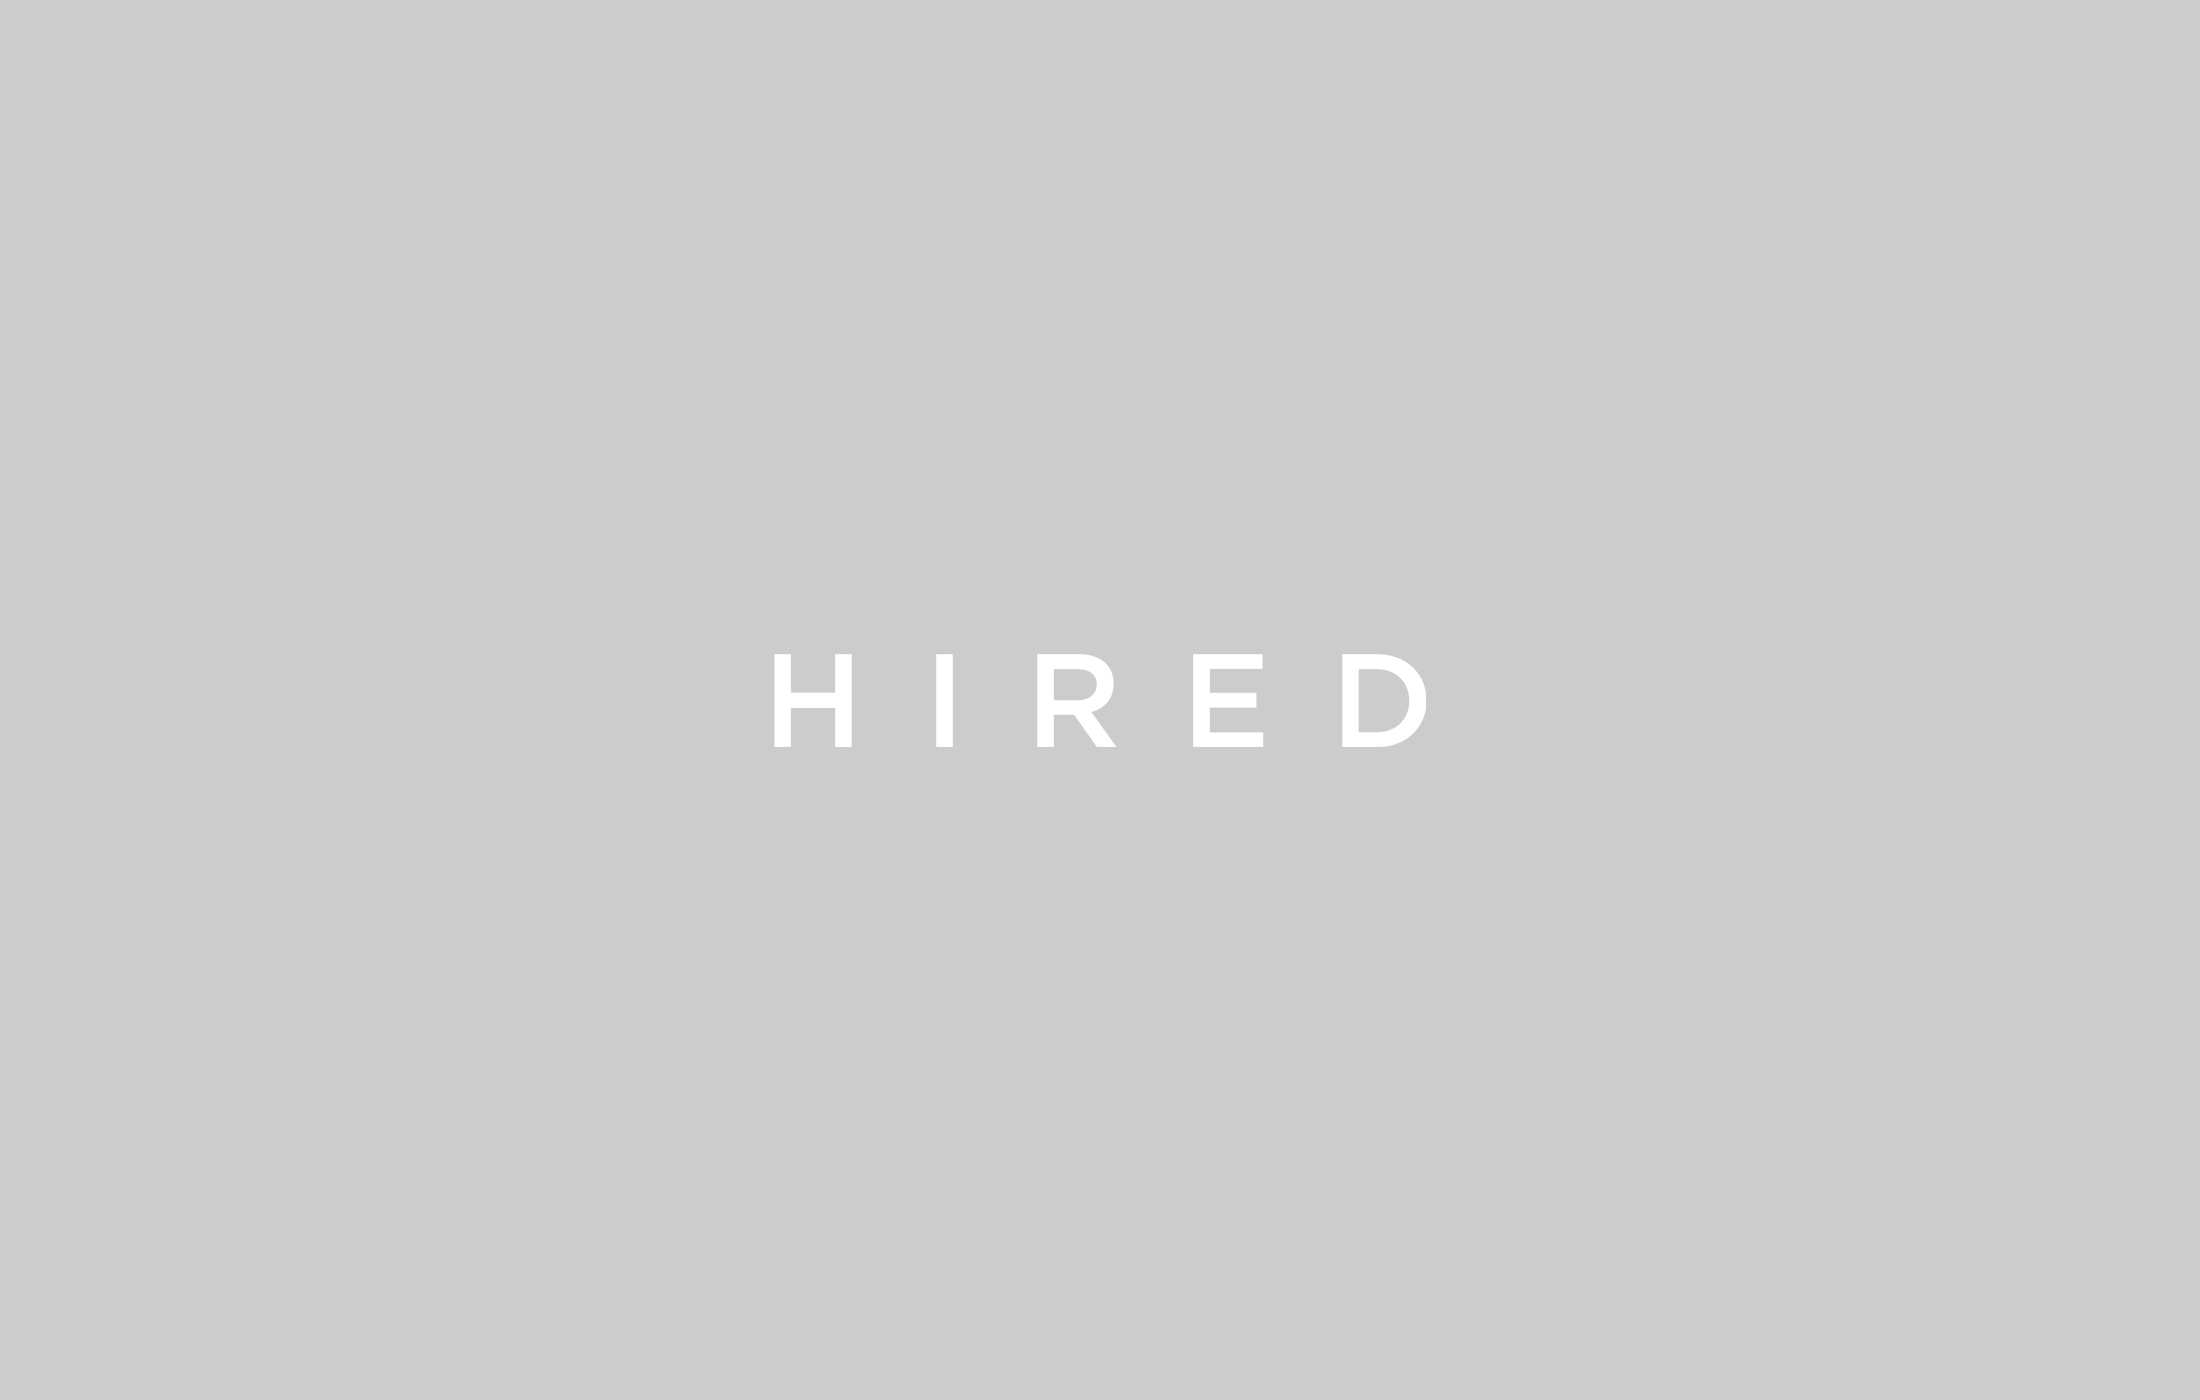 hired-three-years-in